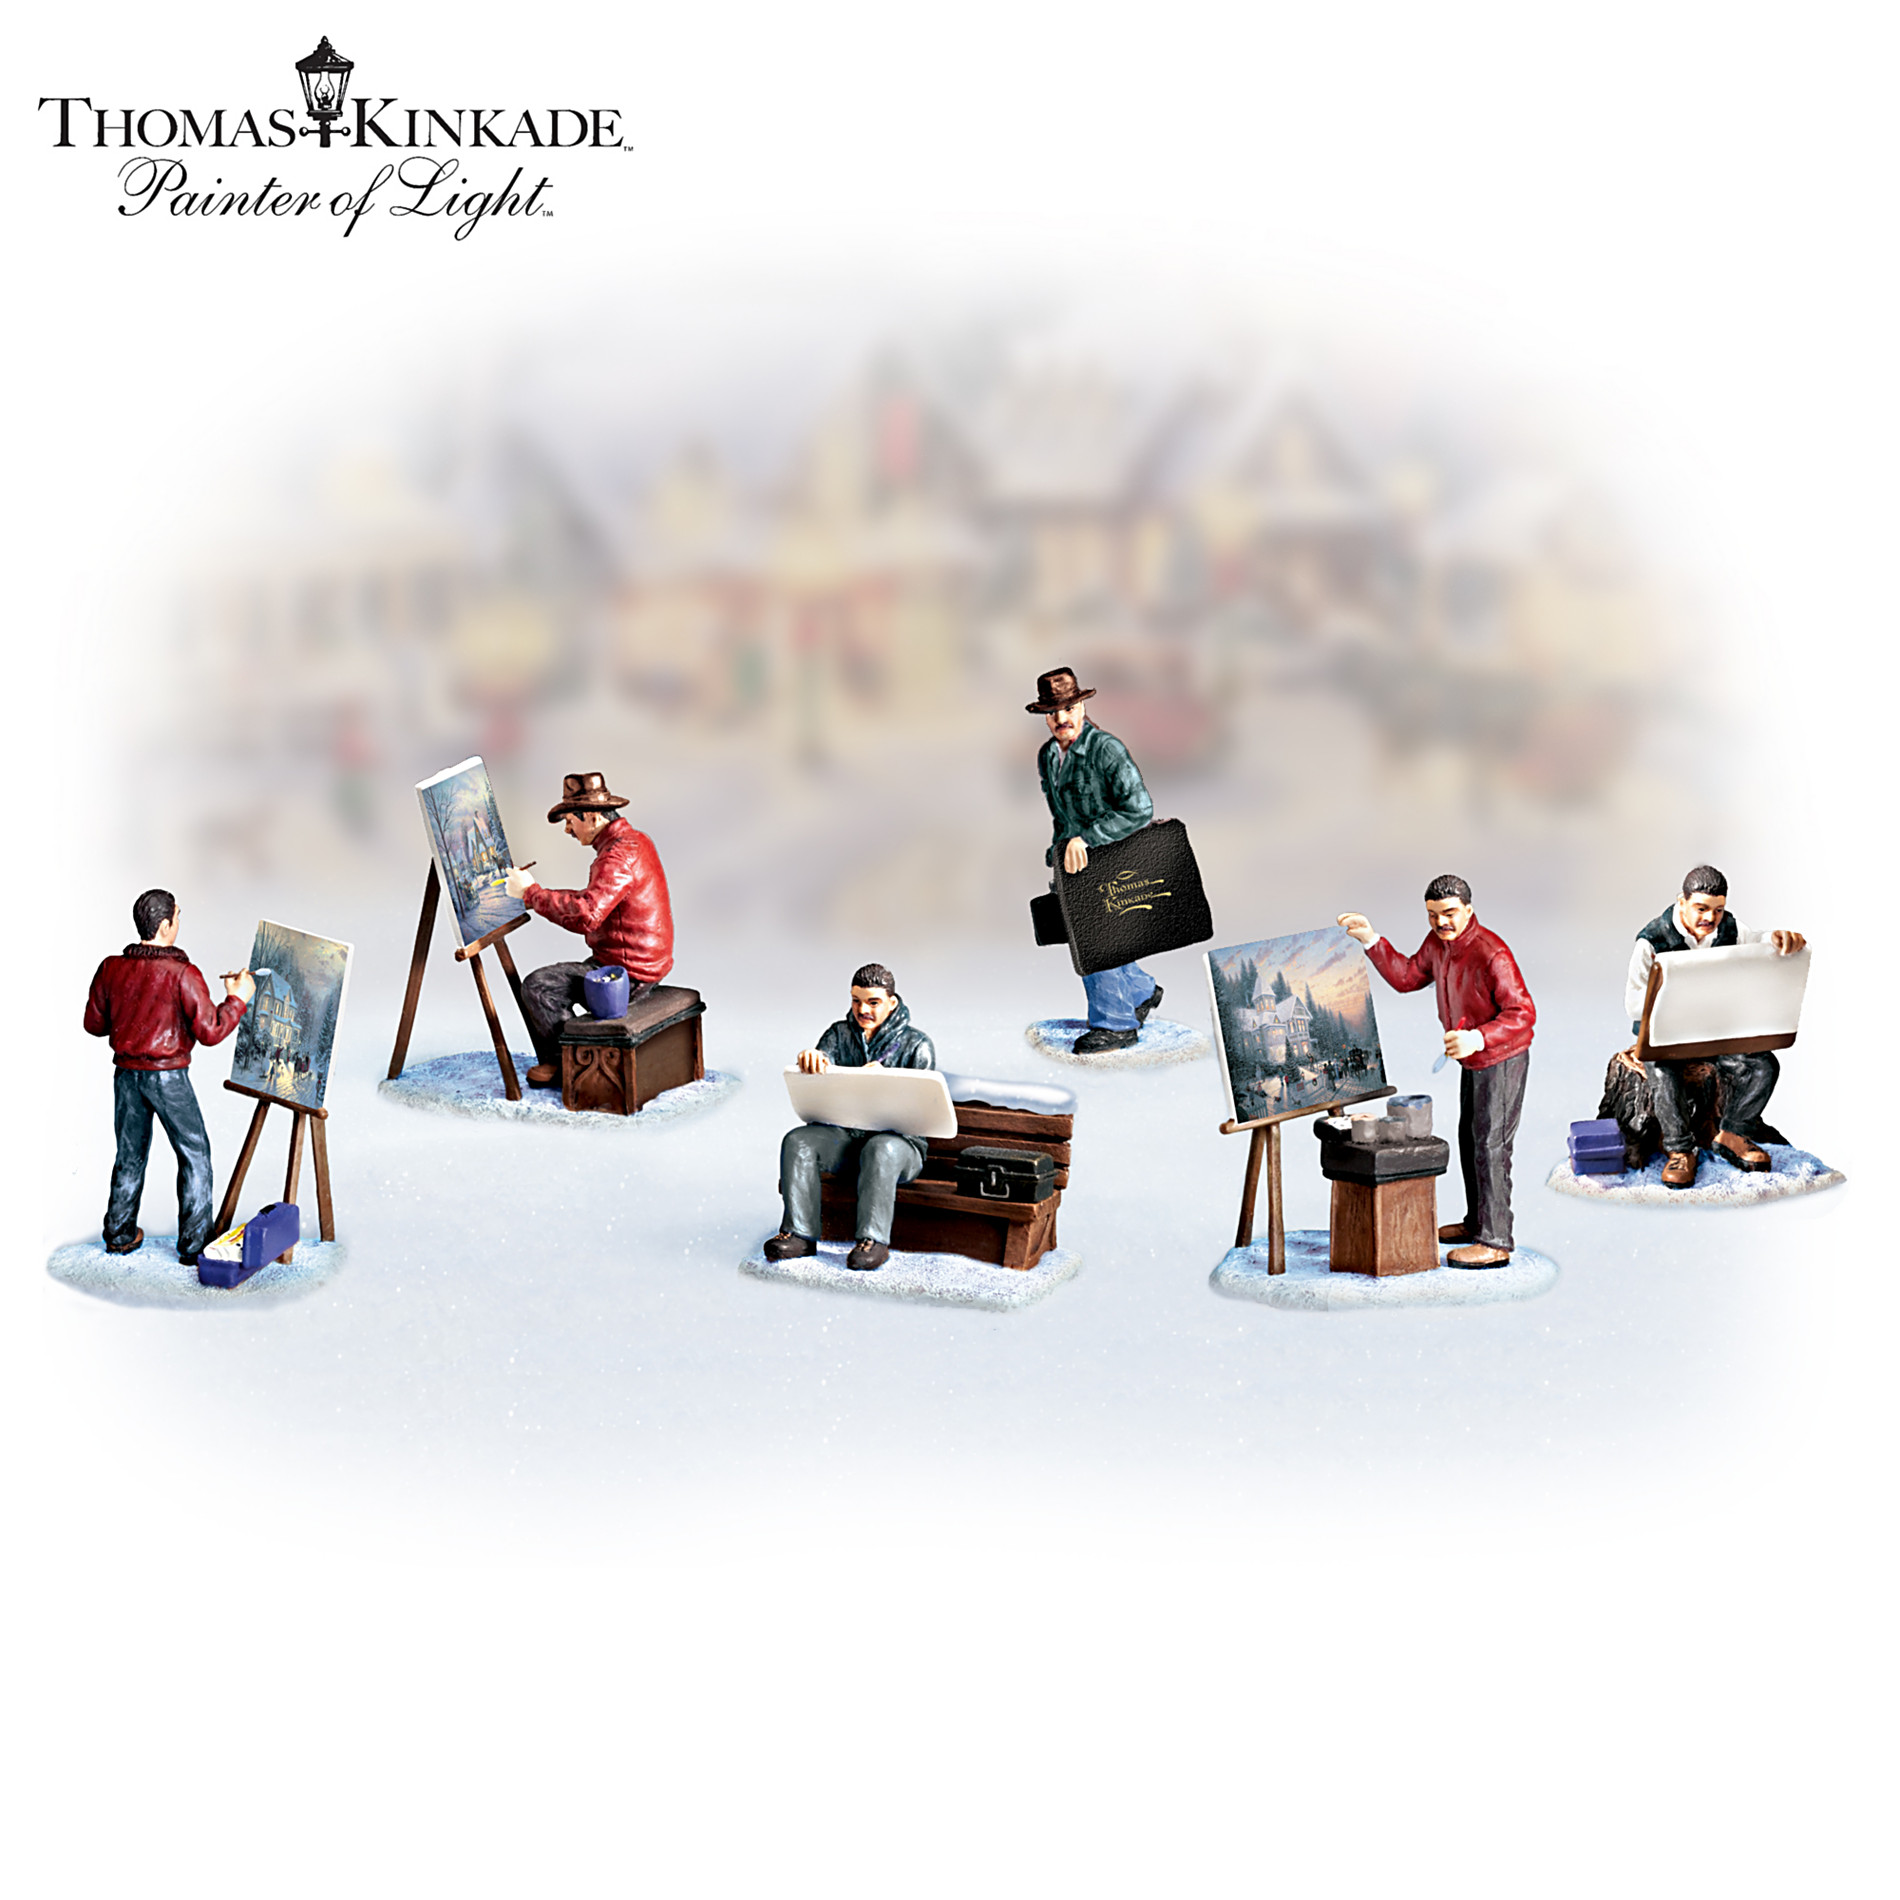 Hawthorne Village Thomas Kinkade Painter of Light Collectible Village Accessory Figurine Set at Sears.com